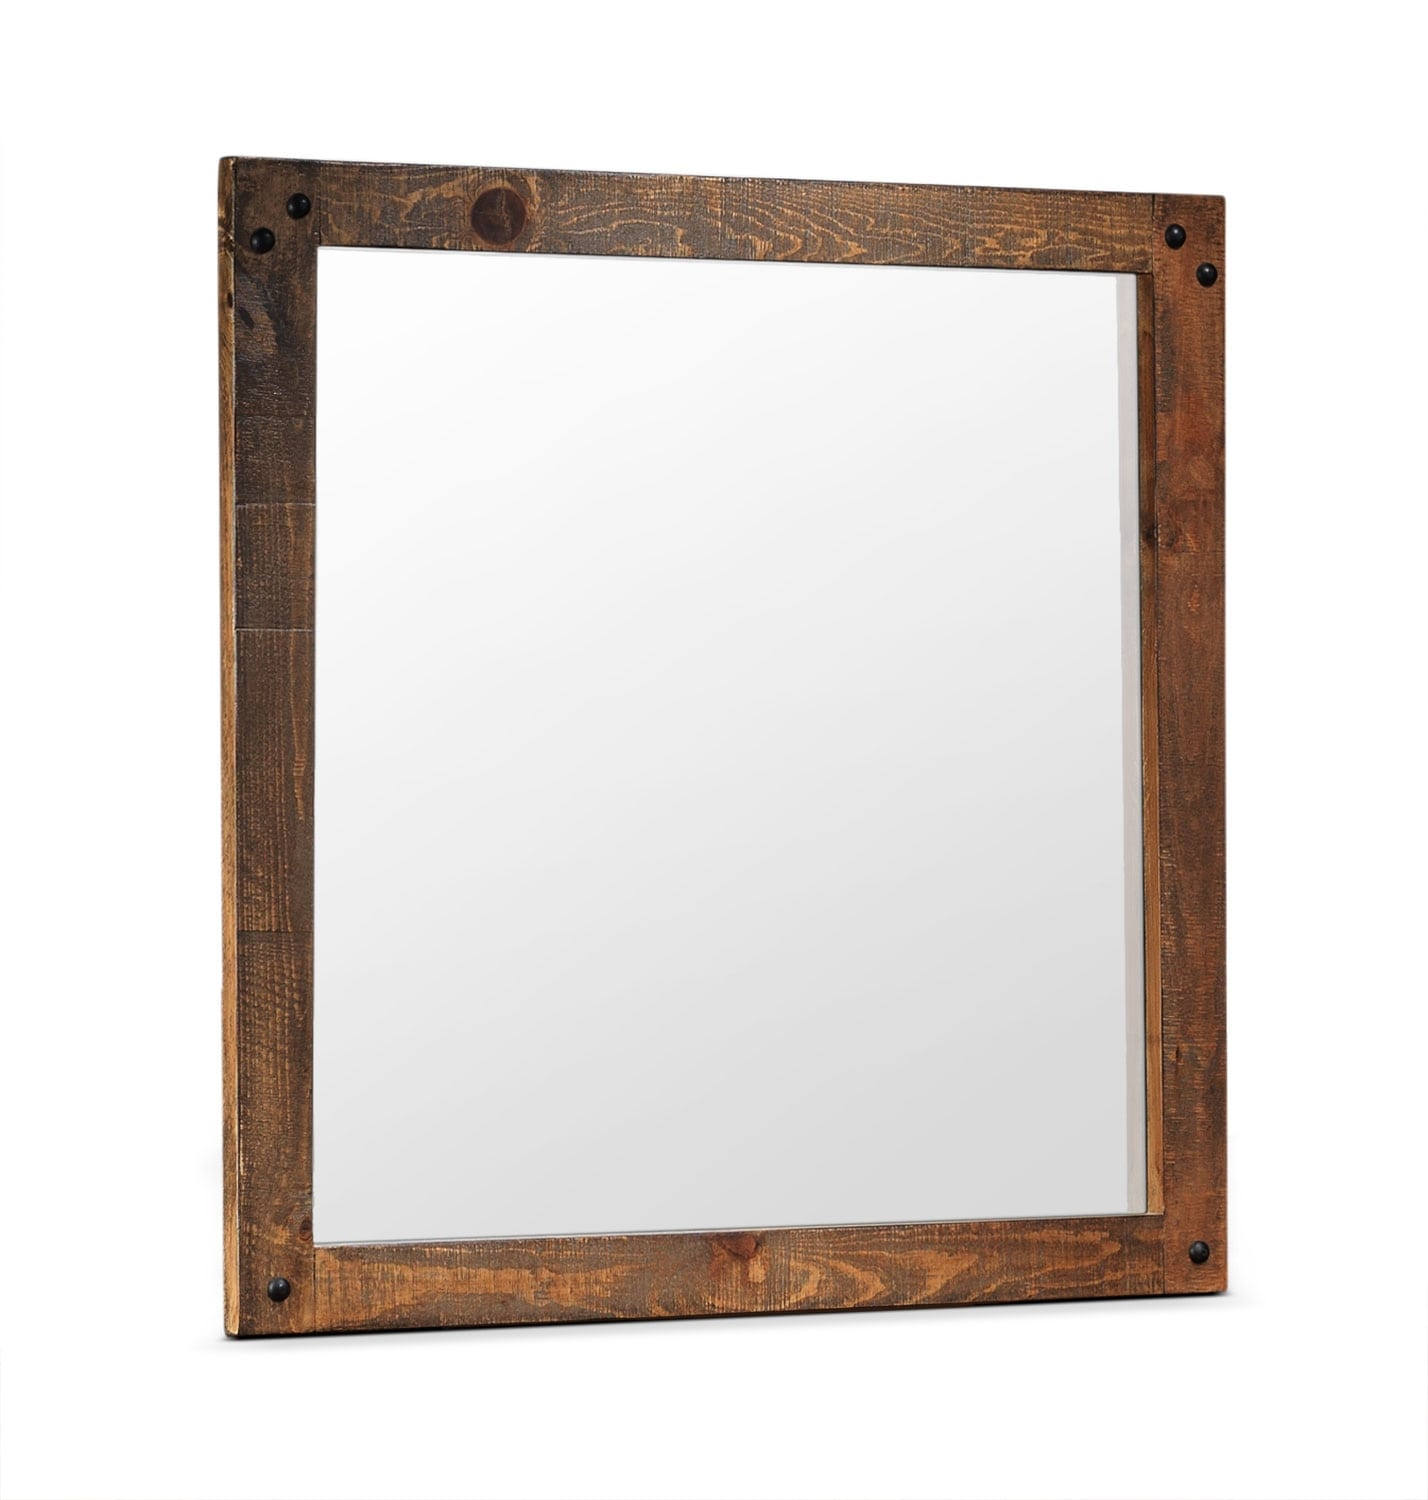 Bedroom Furniture - Maya Mirror - Rustic Pine